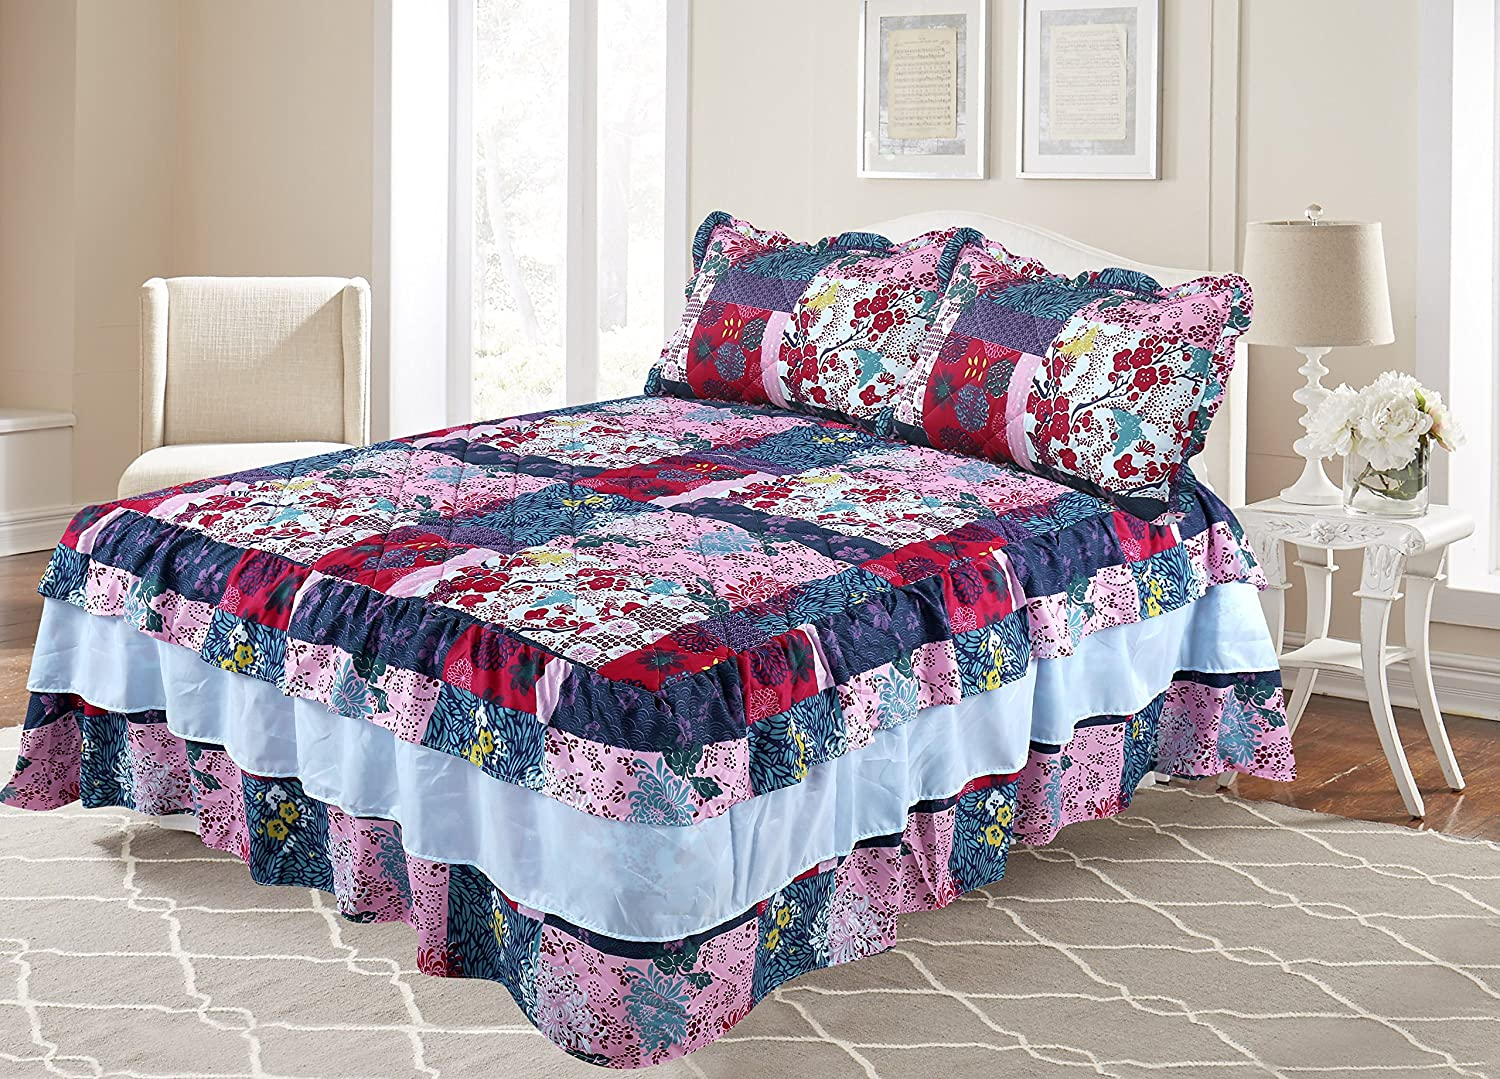 All American Collection New 3pc Bedspread/Quilt Set with Attached Bed Ruffle/Skirt King Size, Navy/ Pink